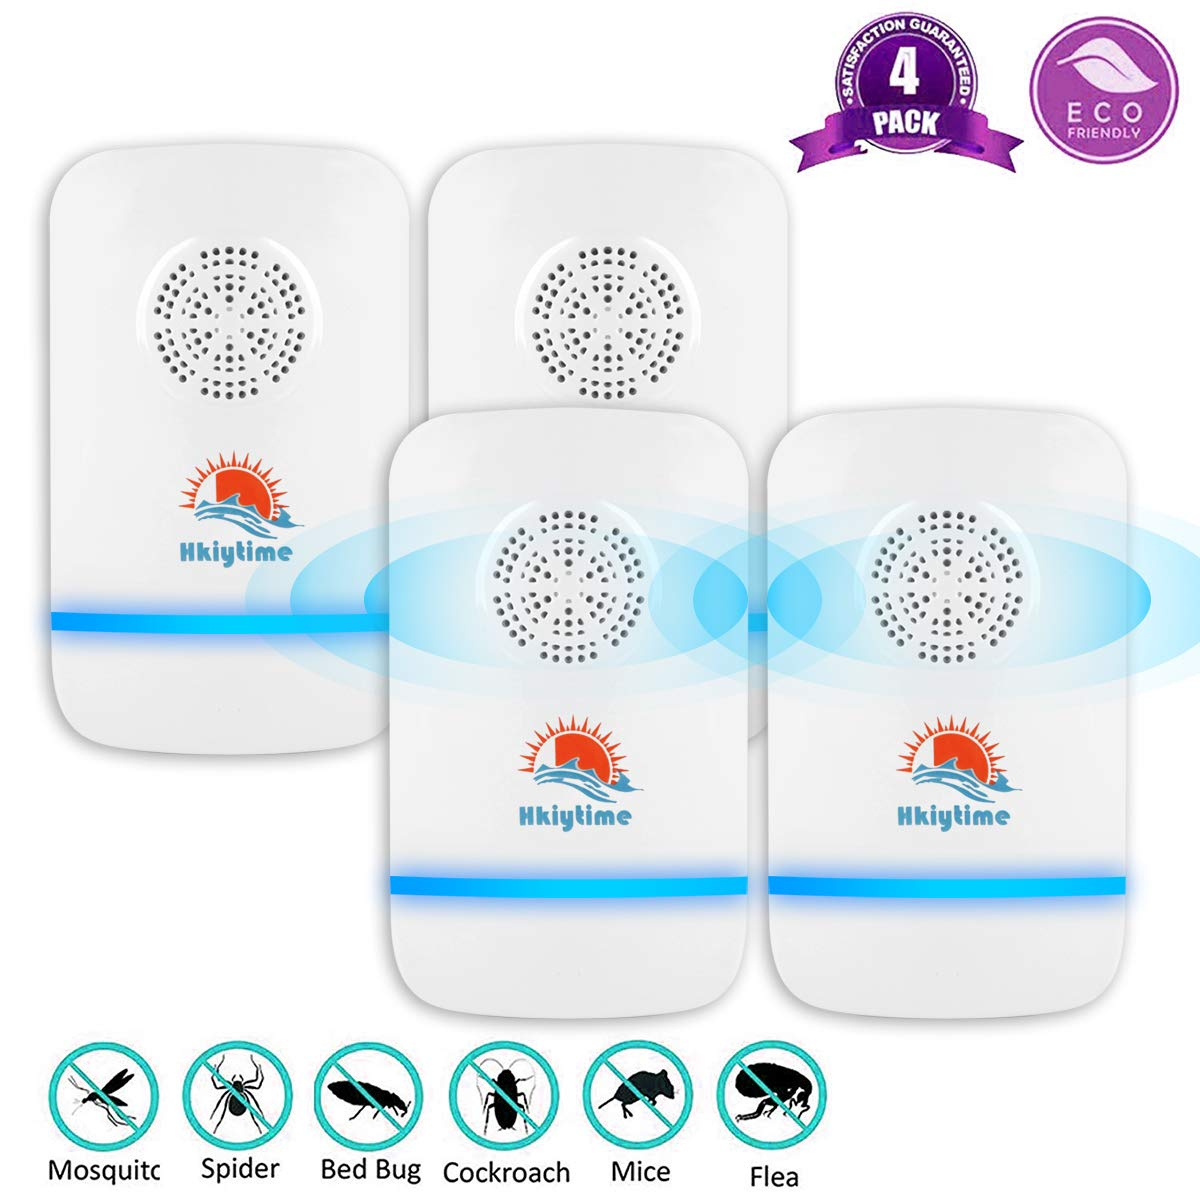 Ants Spiders Fleas Cockroach Flies Rodents Plug in Insect Repeller,2 Pack Ultrasonic Pest Control Repellent against Mosquito Hkiytime Ultrasonic Pest Repeller Mice